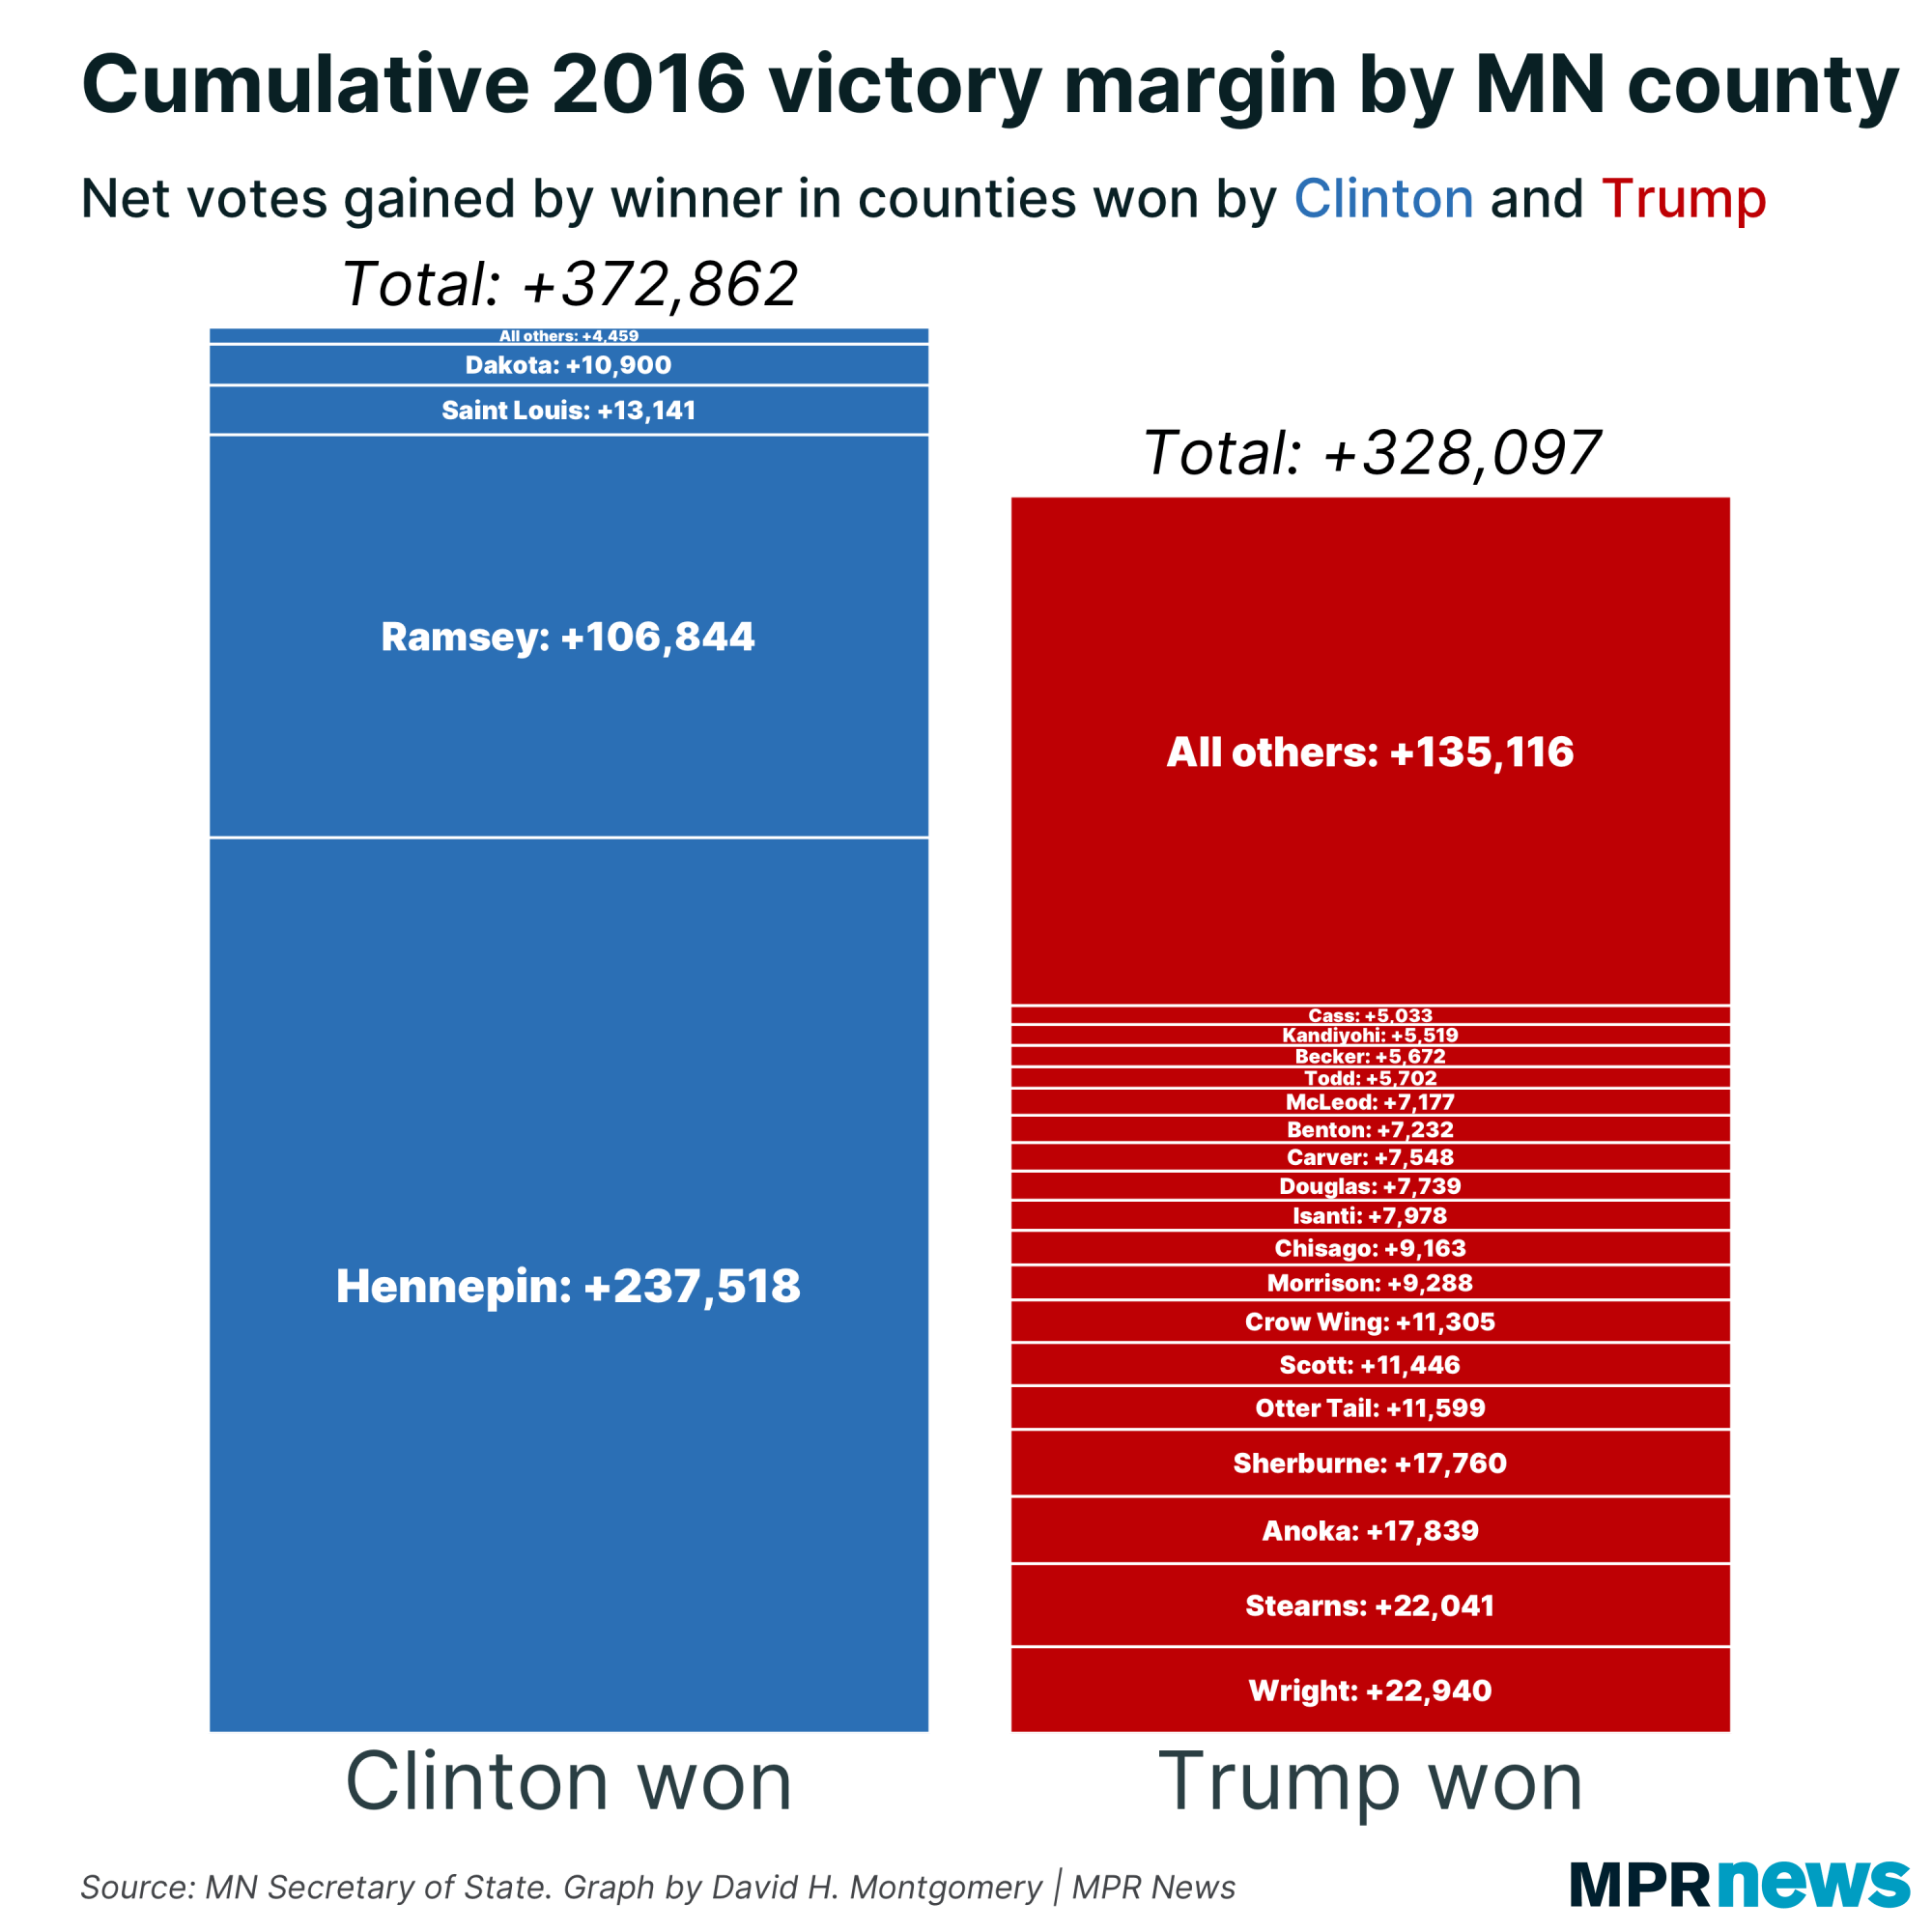 2016 Trump and Clinton victory margin by Minnesota county